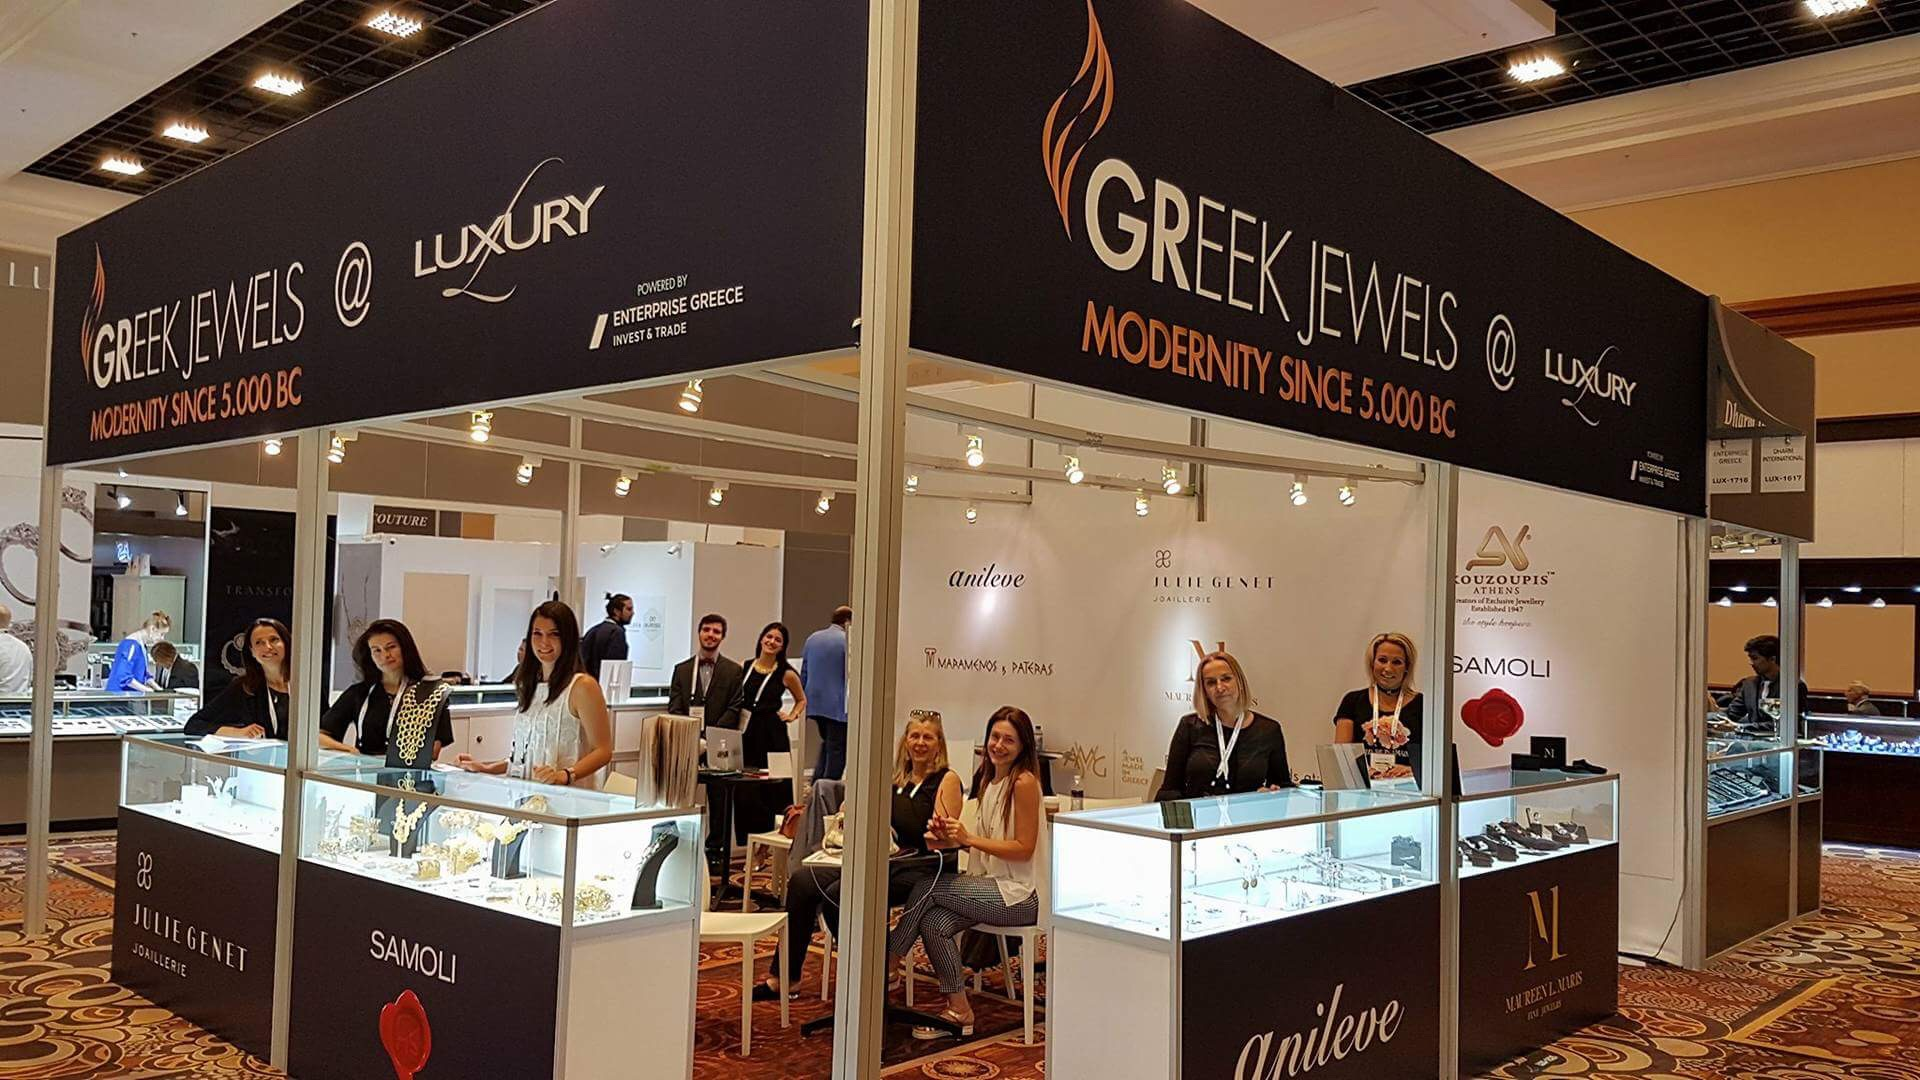 Fourteen leading Greek jewelry companies participated in the JCK International Jewelry Exhibition in Las Vegas showcasing the timeless beauty and design of ...